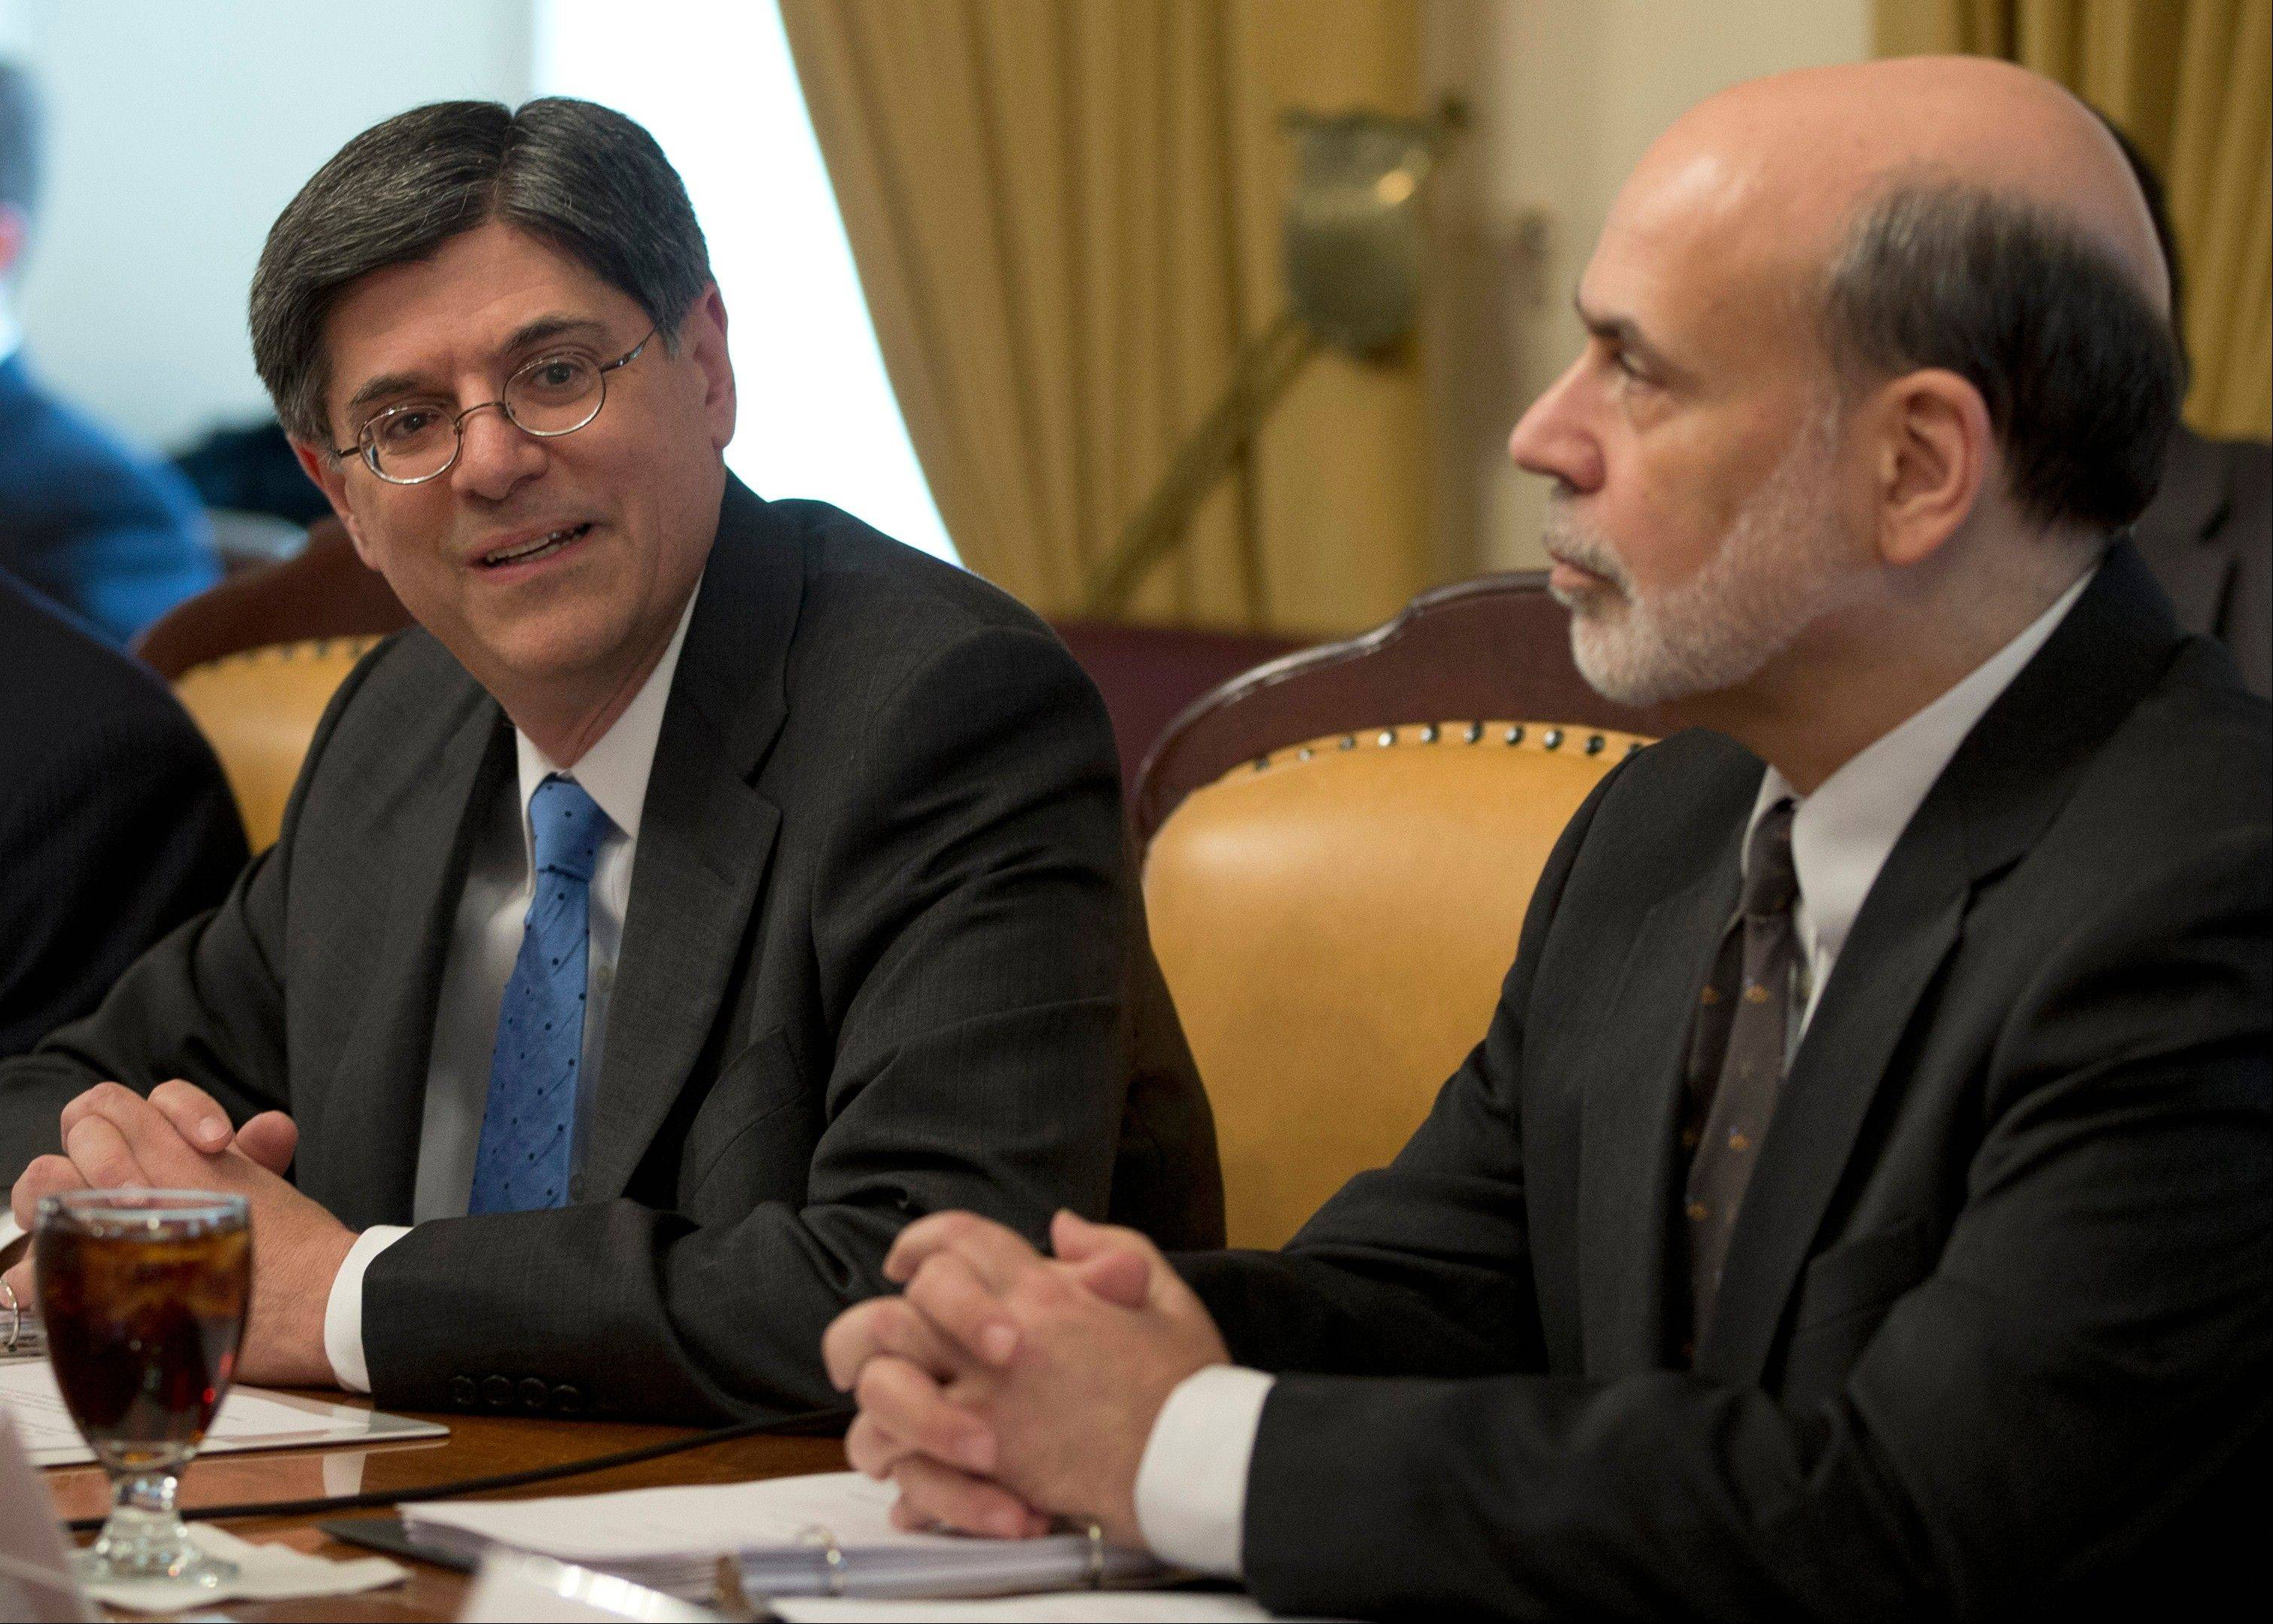 Treasury Secretary Jack Lew, left, accompanied by Federal Reserve Chairman Ben Bernanke, speaks to reporters before his first meeting as Treasury secretary Thursday.